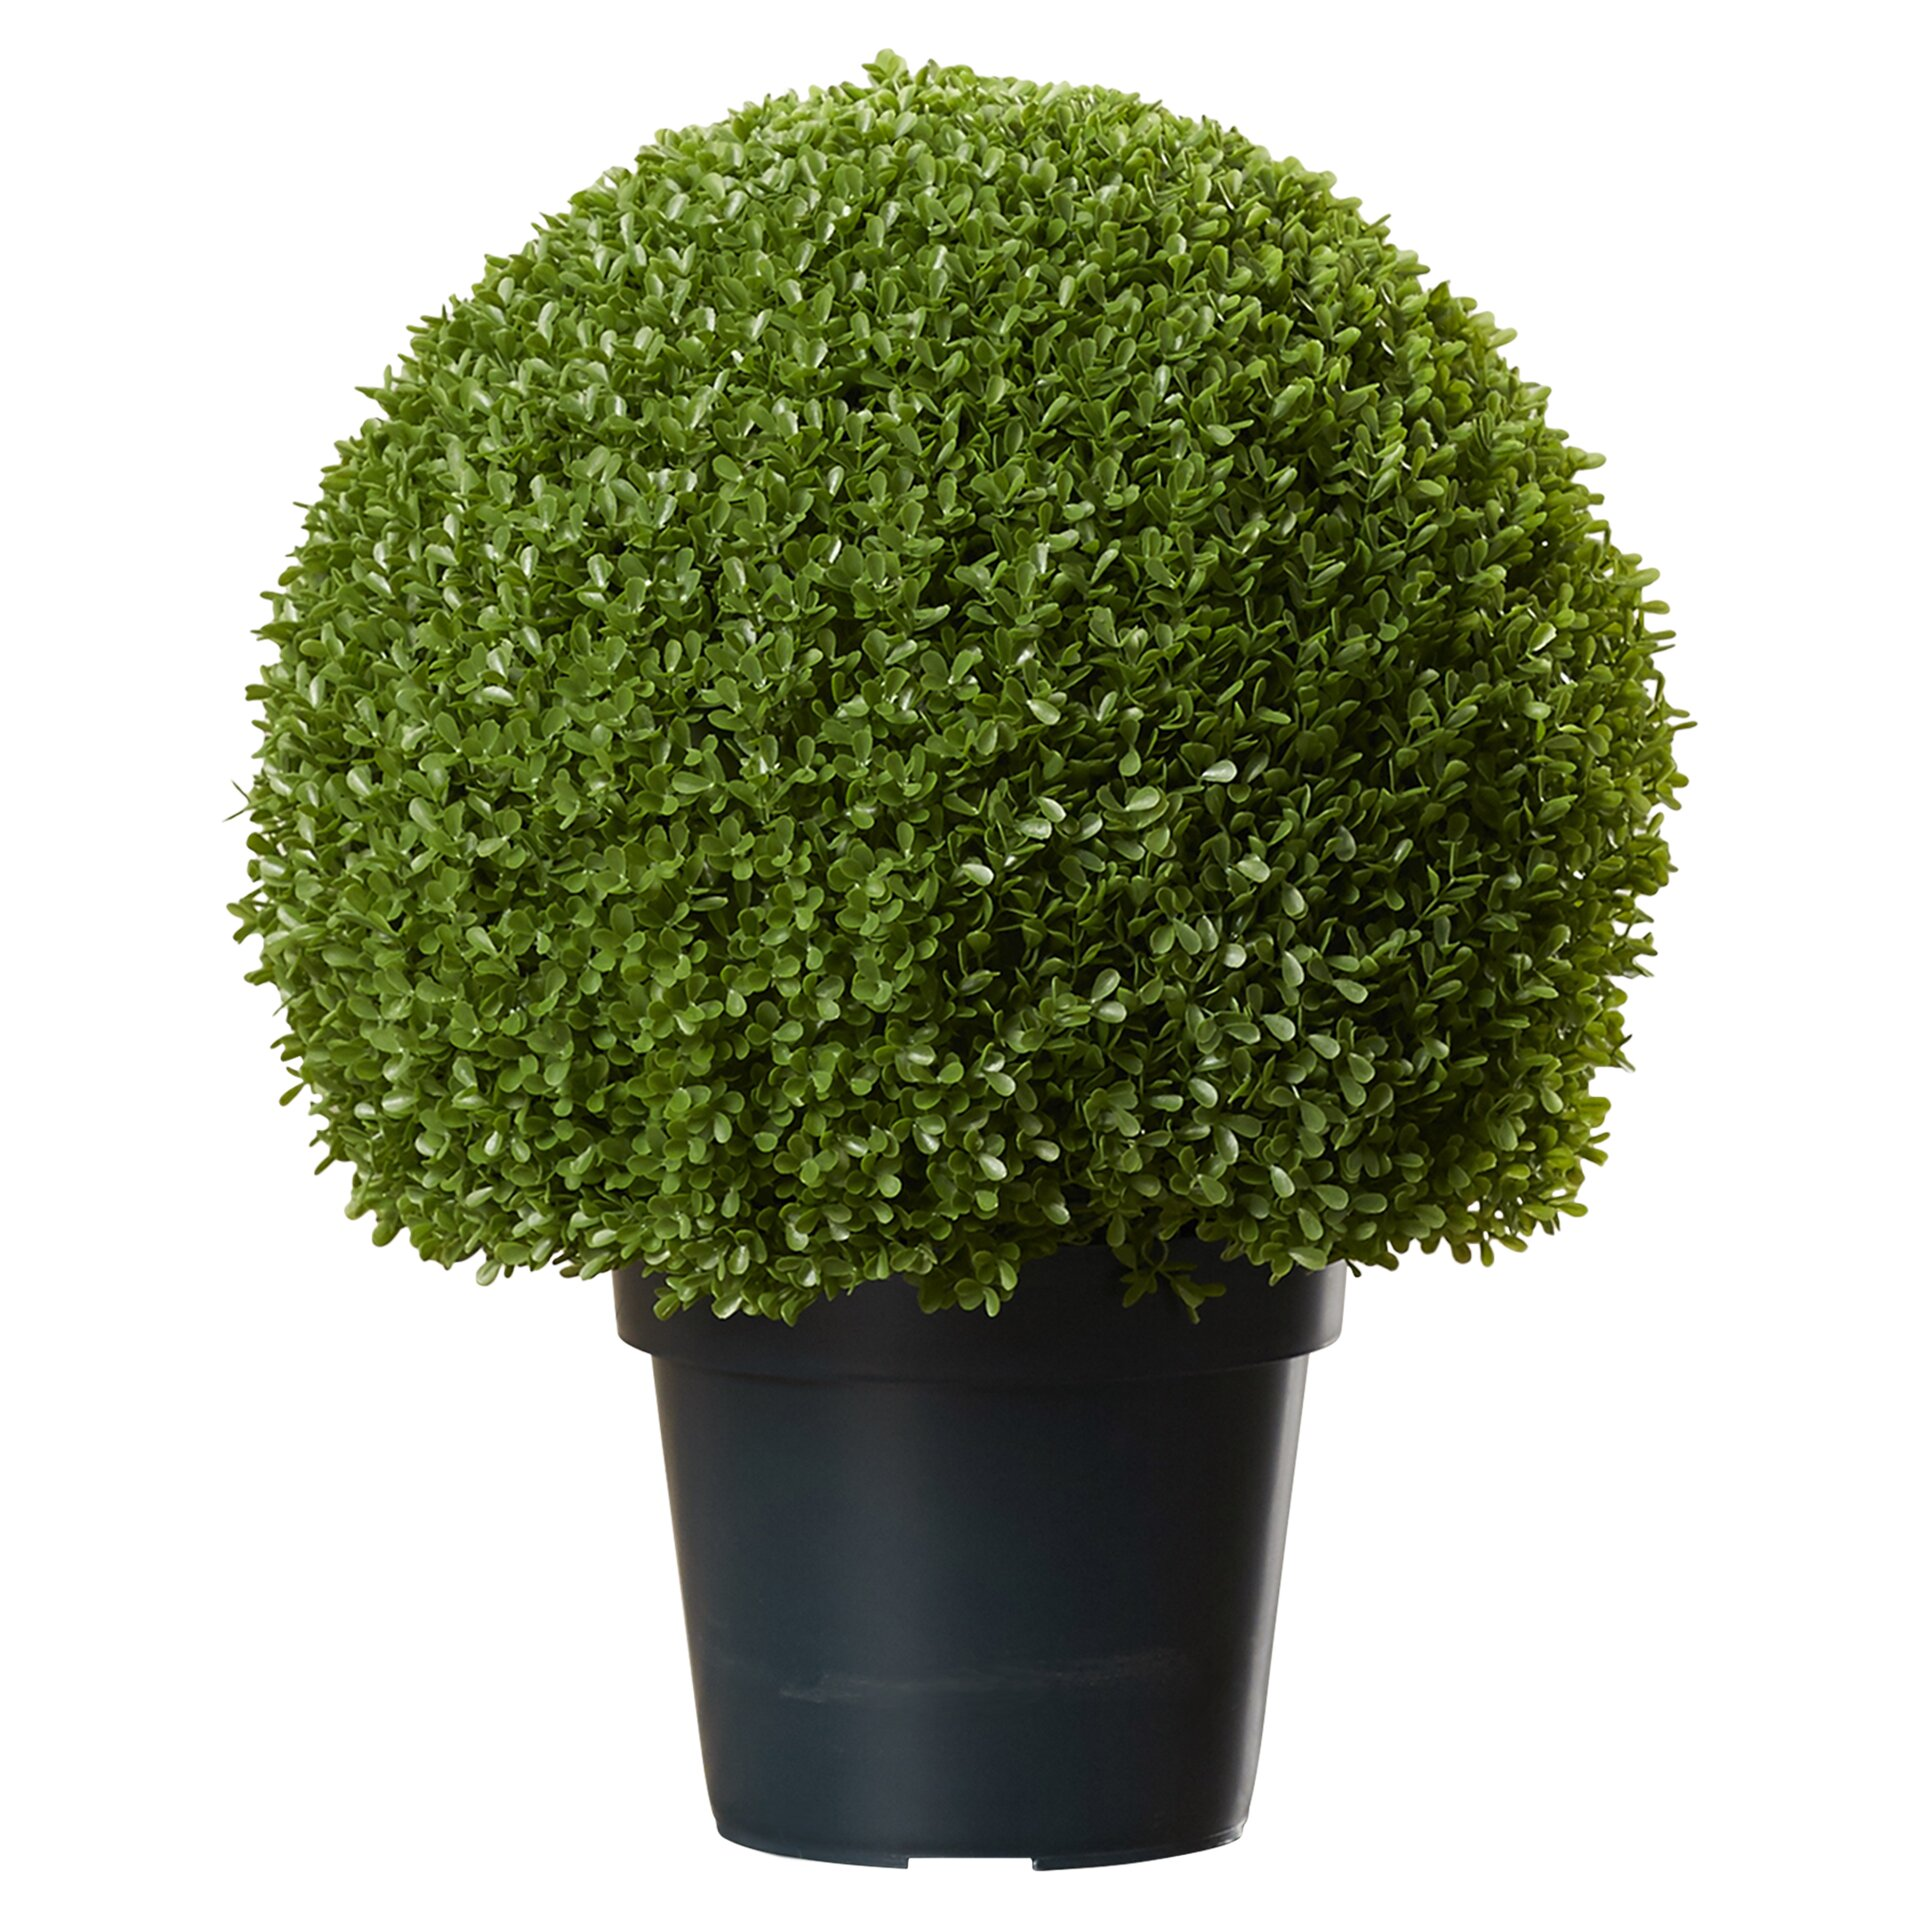 Artificial plants for kitchen - Faux Round Boxwood Topiary In Pot